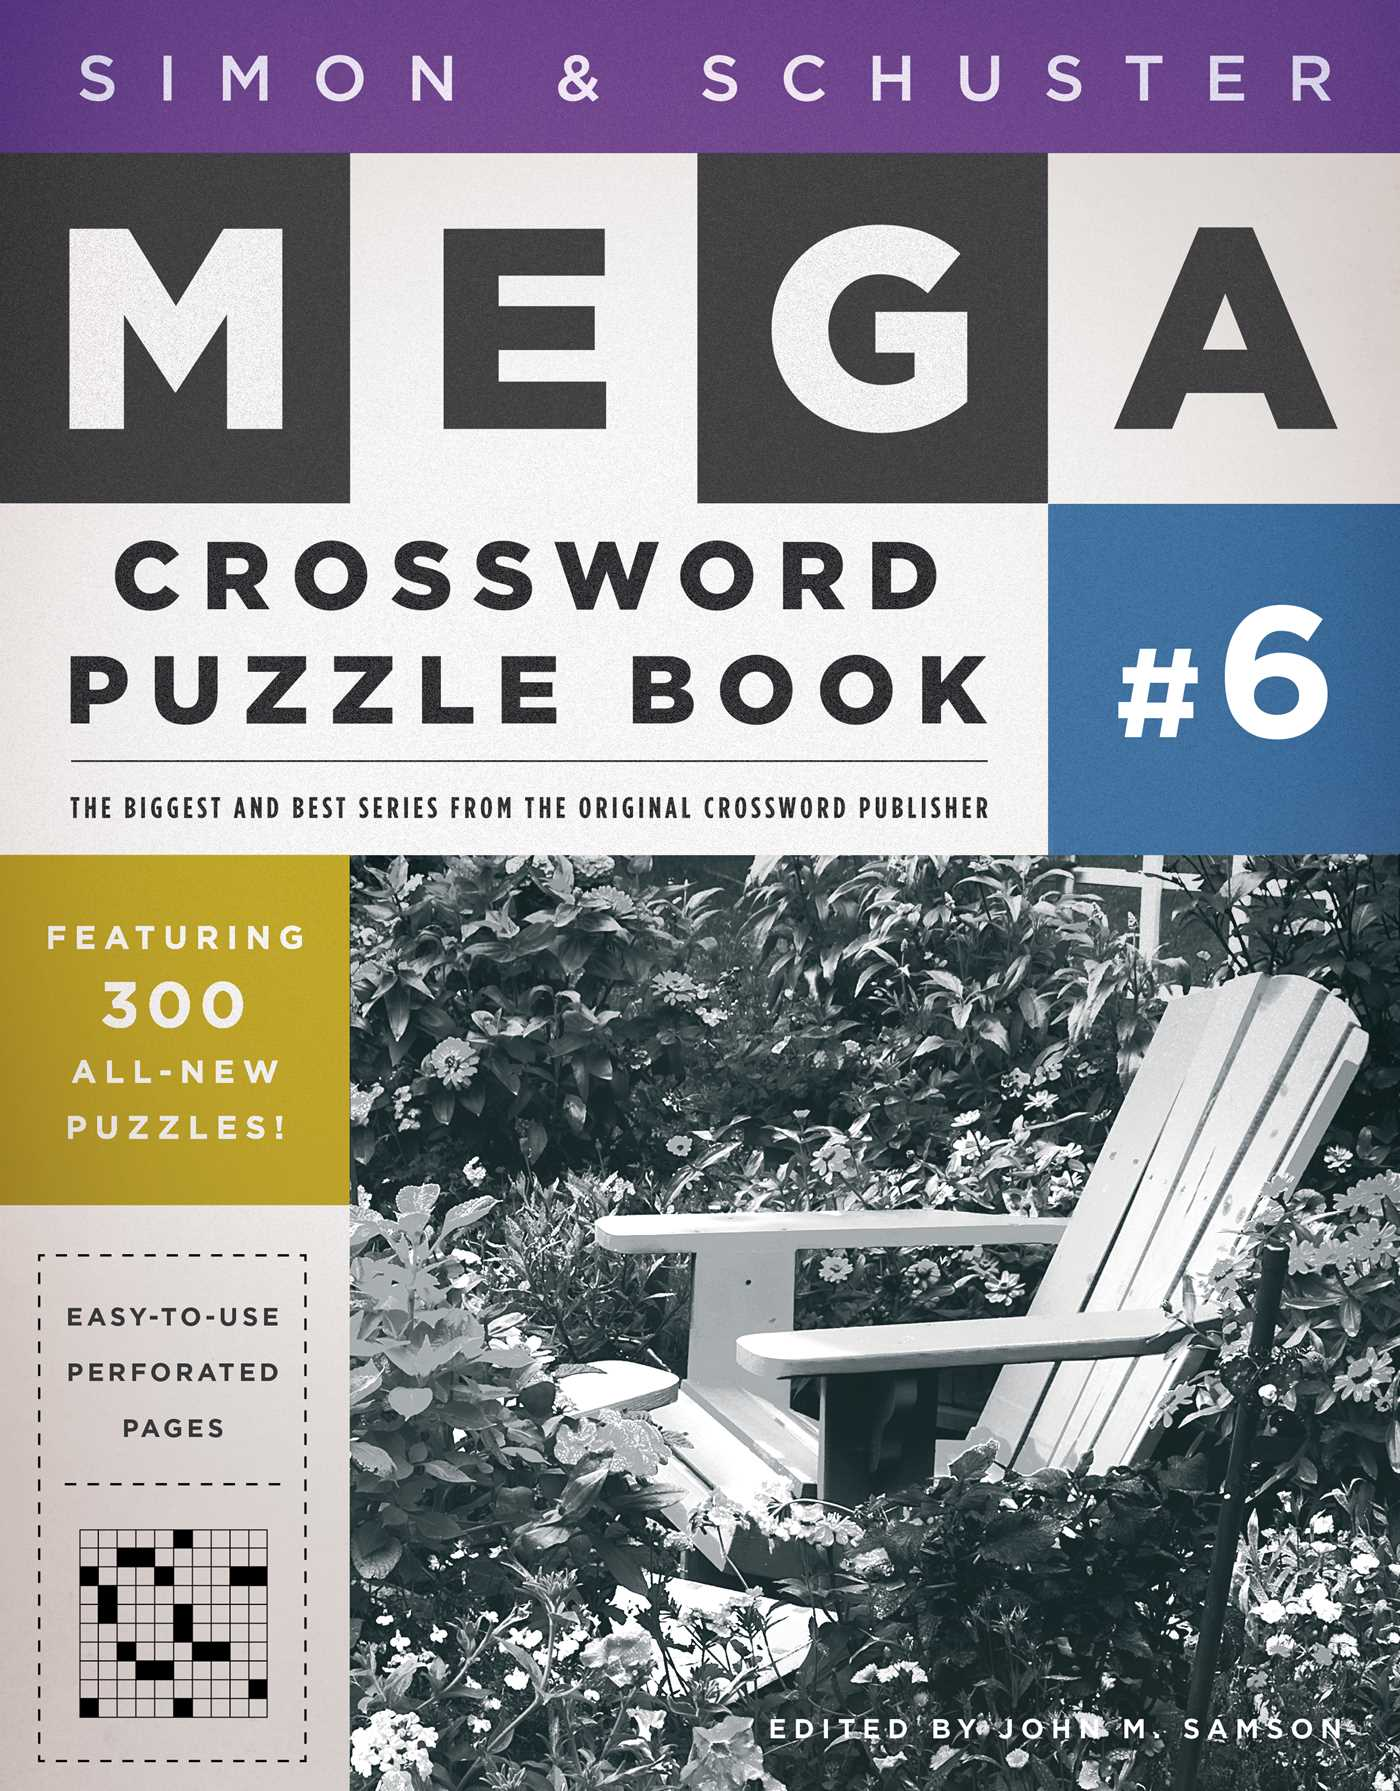 Simon-schuster-mega-crossword-puzzle-book-6-9781416587842_hr